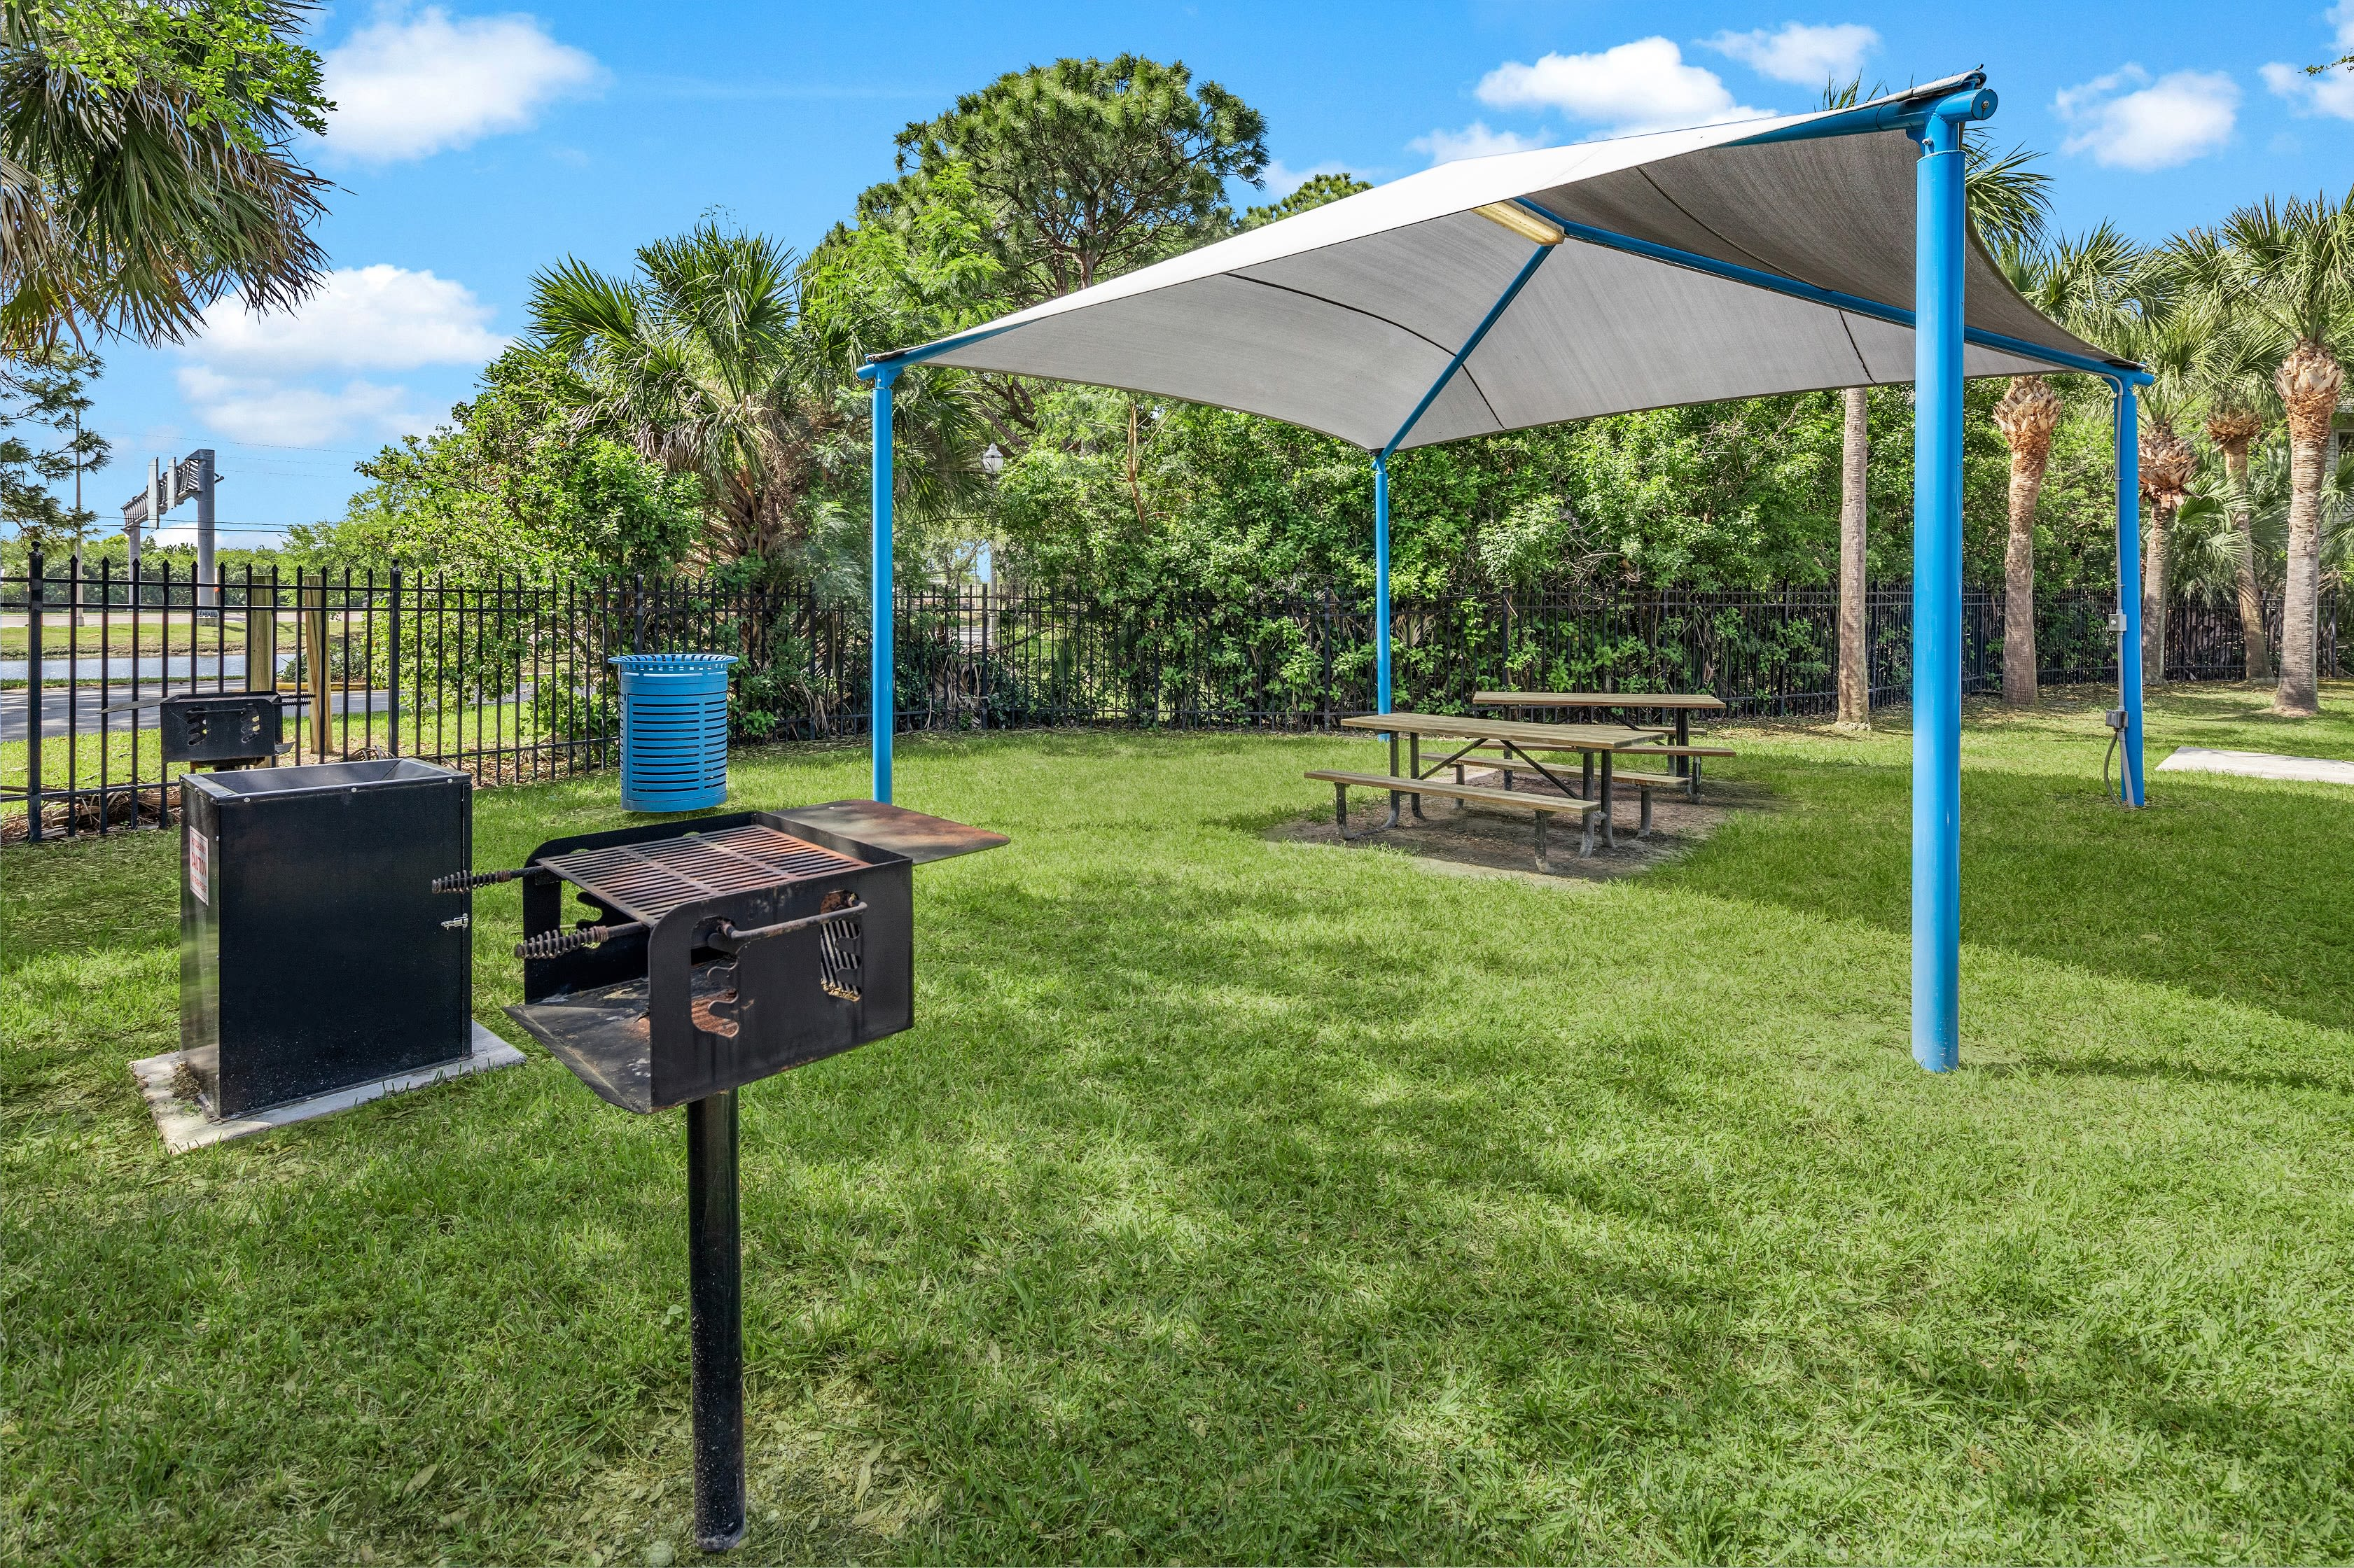 An shaded apartment picnic area with a grill at Fairways at Feather Sound in Clearwater, FL